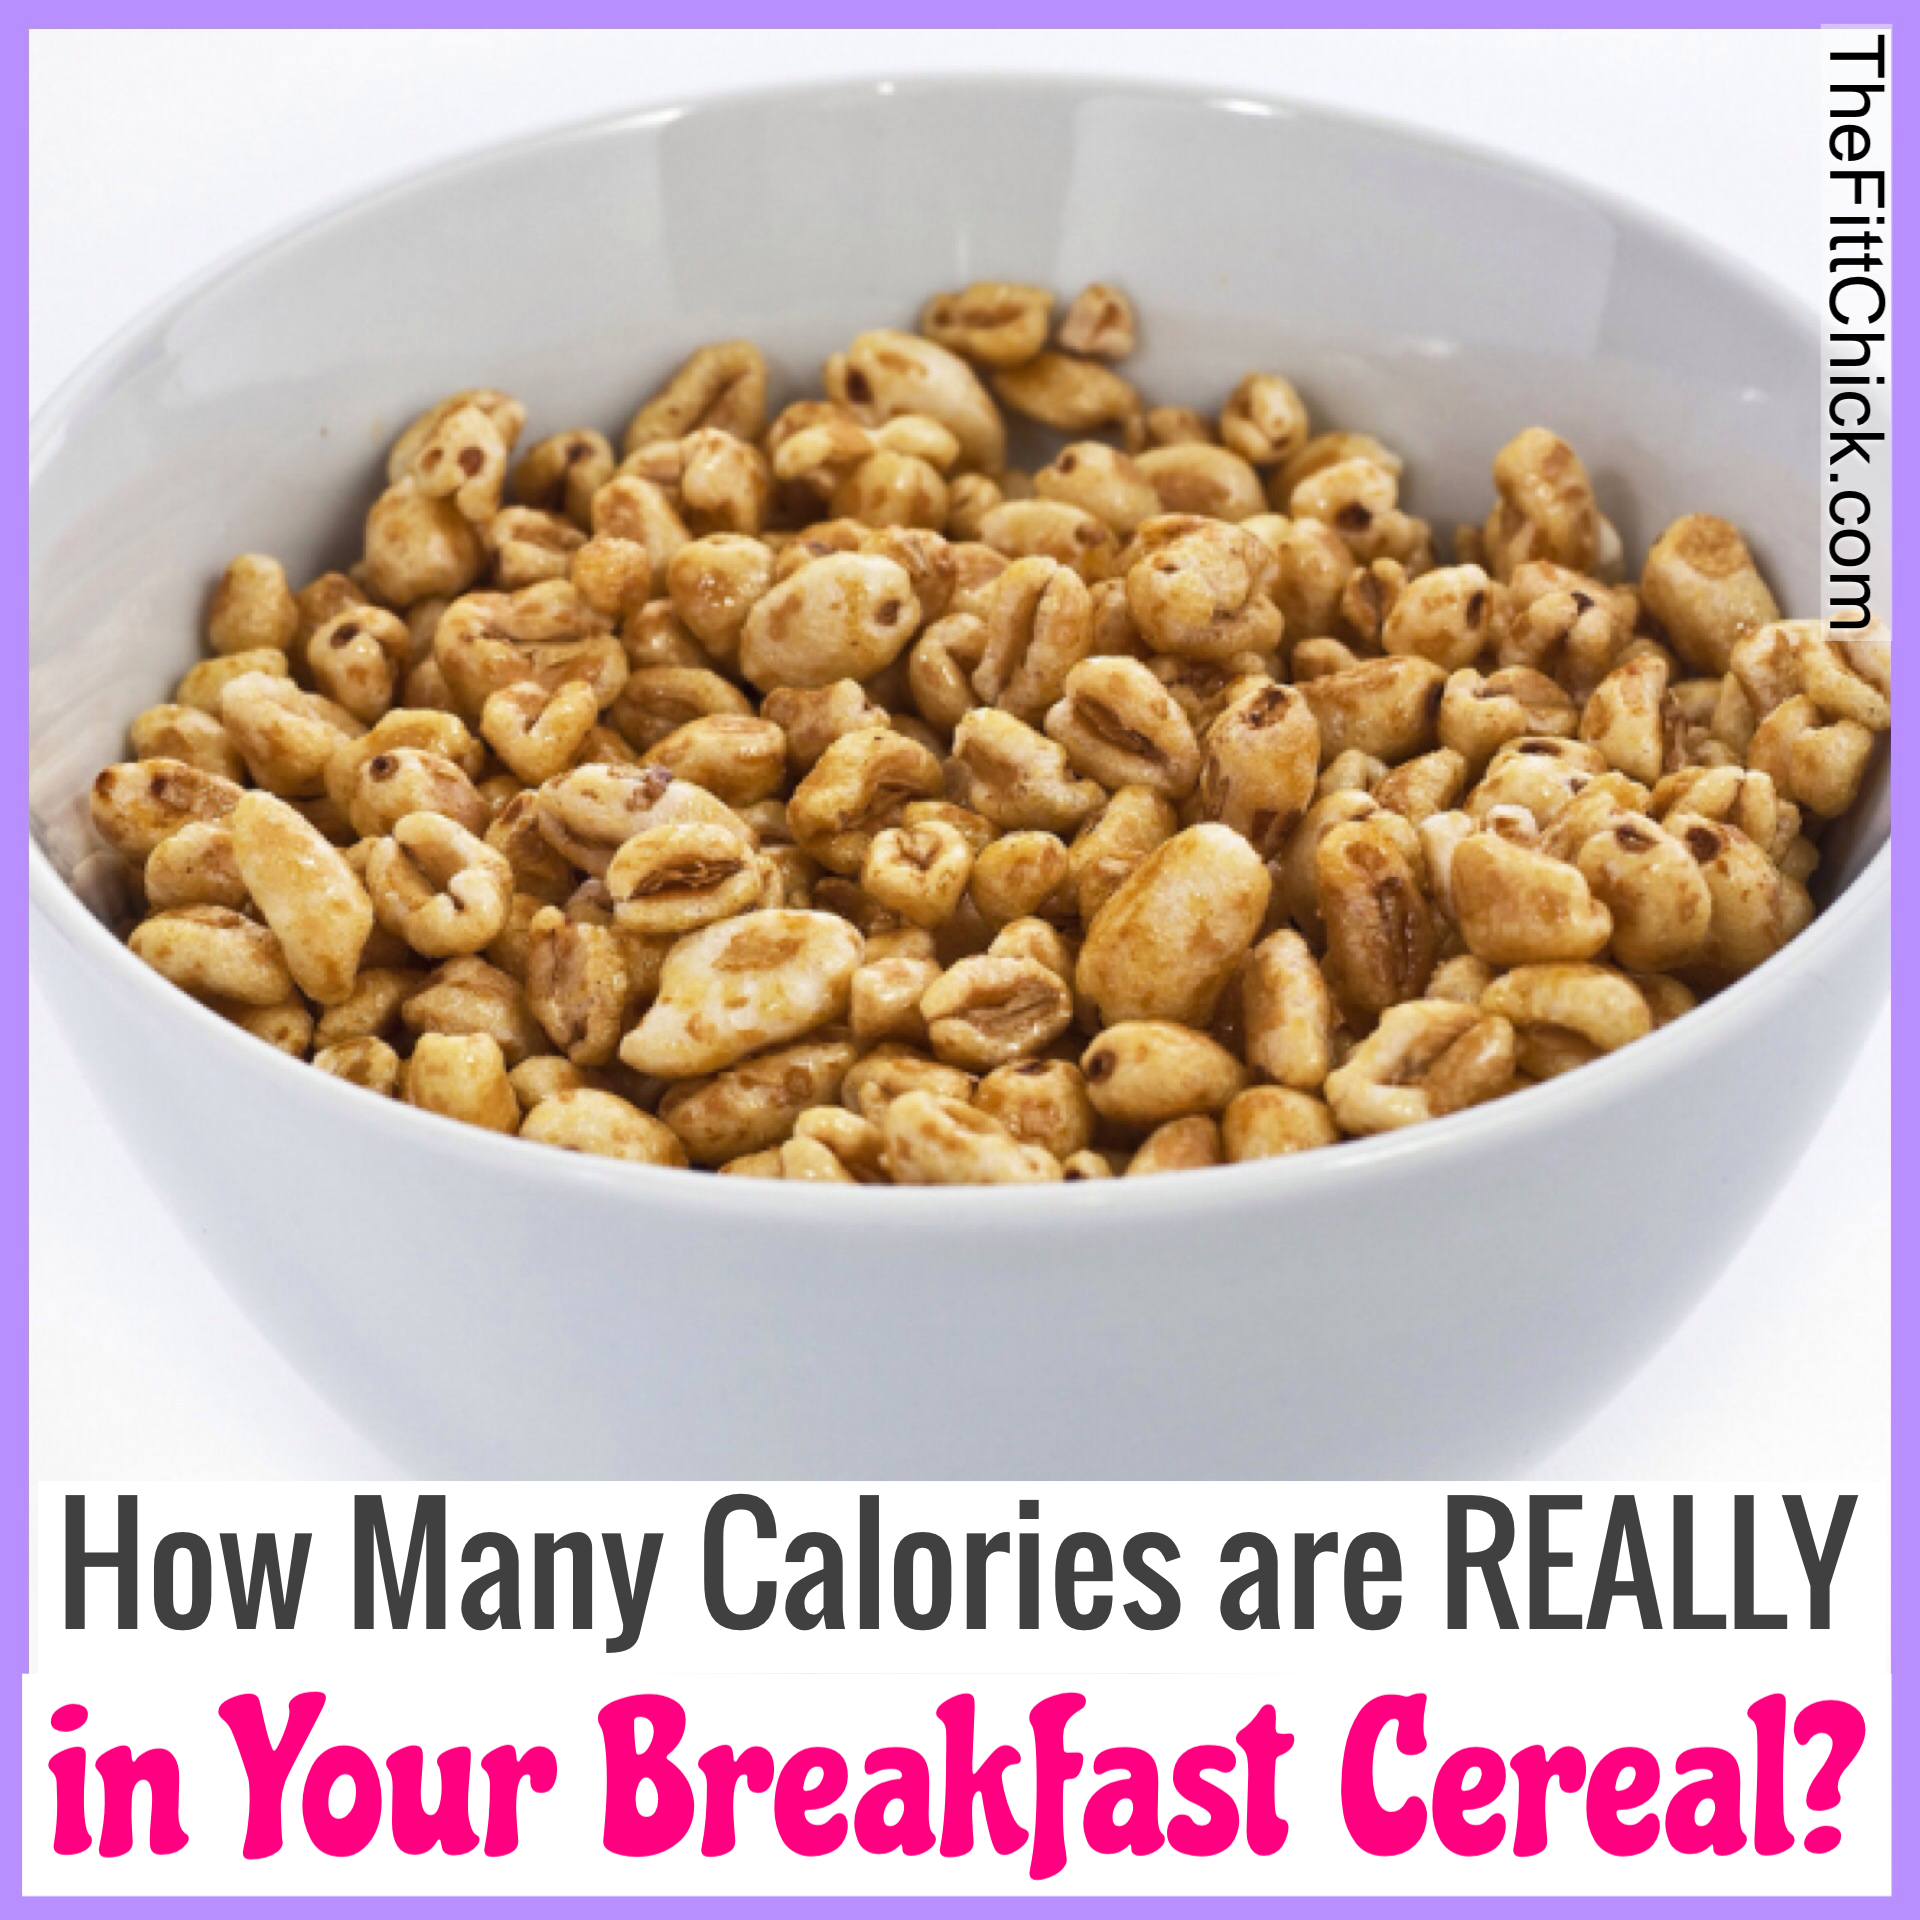 Calories In Breakfast Cereal